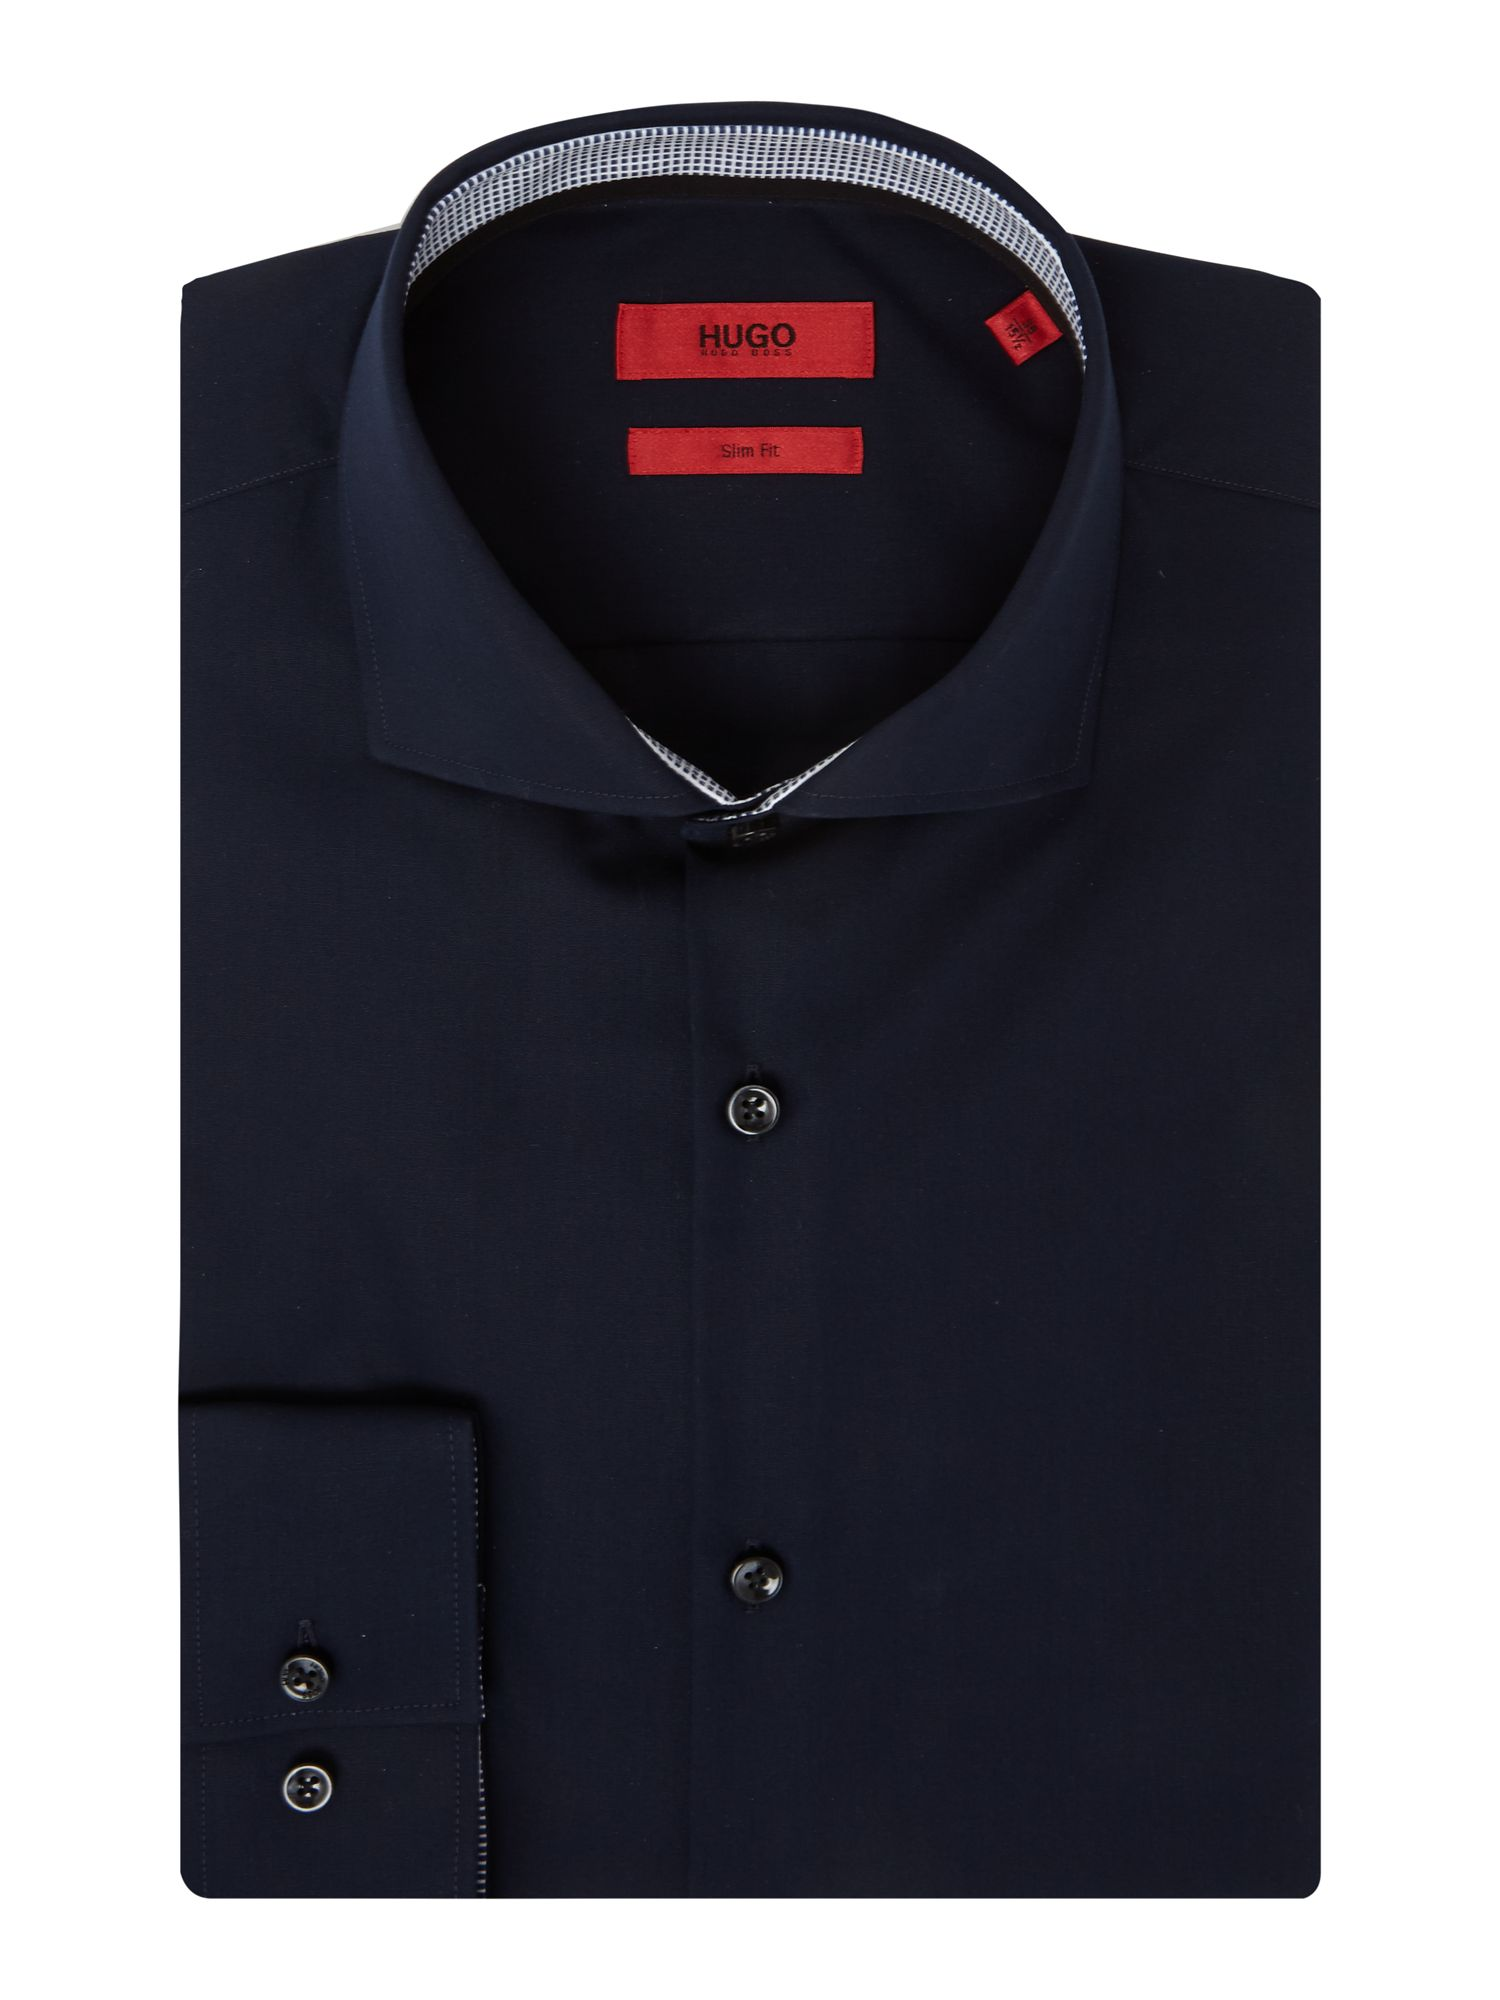 HUGO Men's Hugo Jerry Slim Fit Double Trim Shirt, Dark Navy